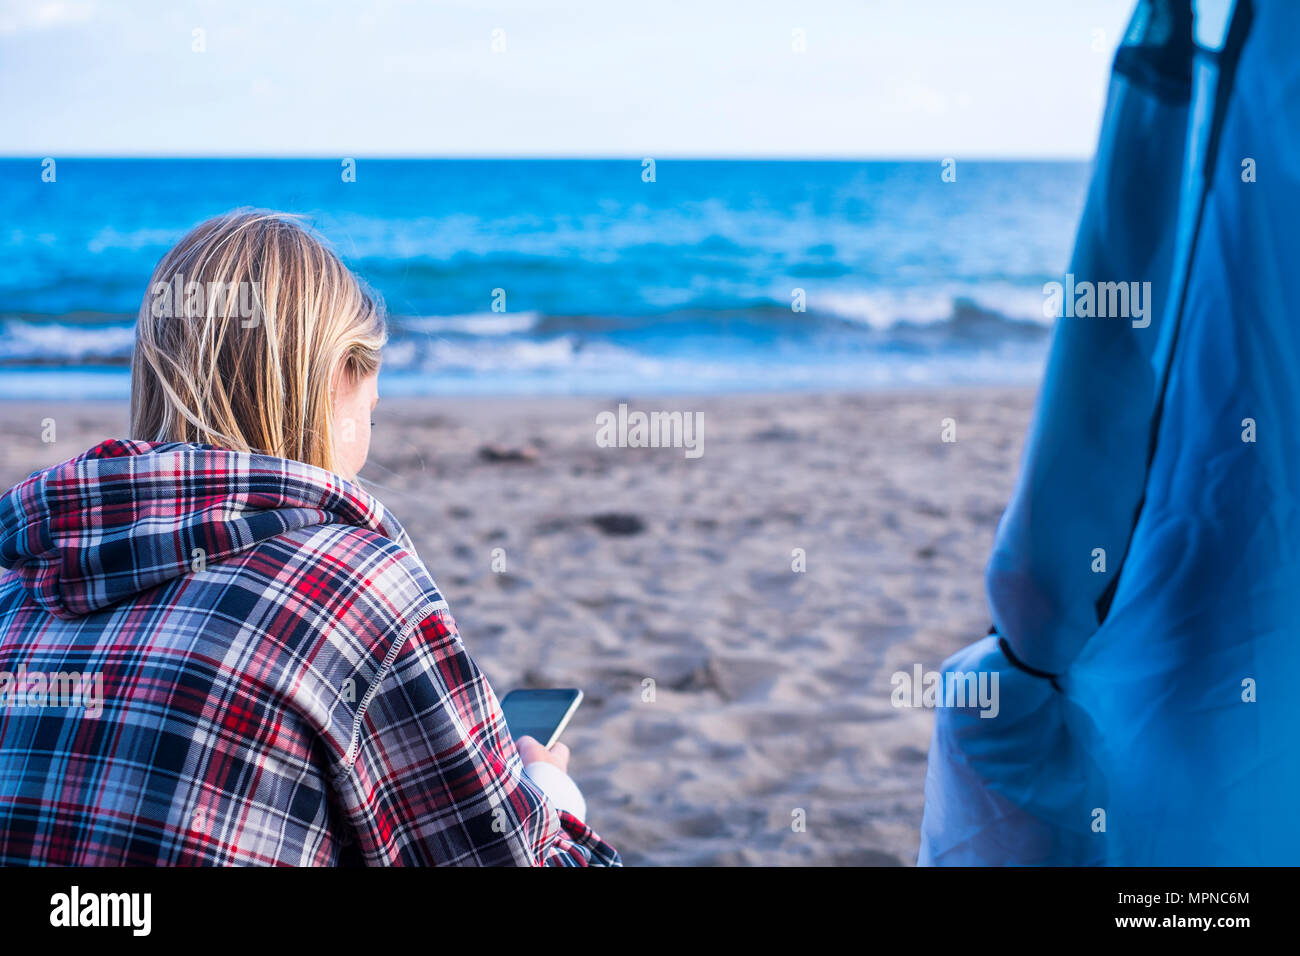 blonde beautiful woman sit down in spring on the beach out of the tent in free camping checking the phone for messages - Stock Image